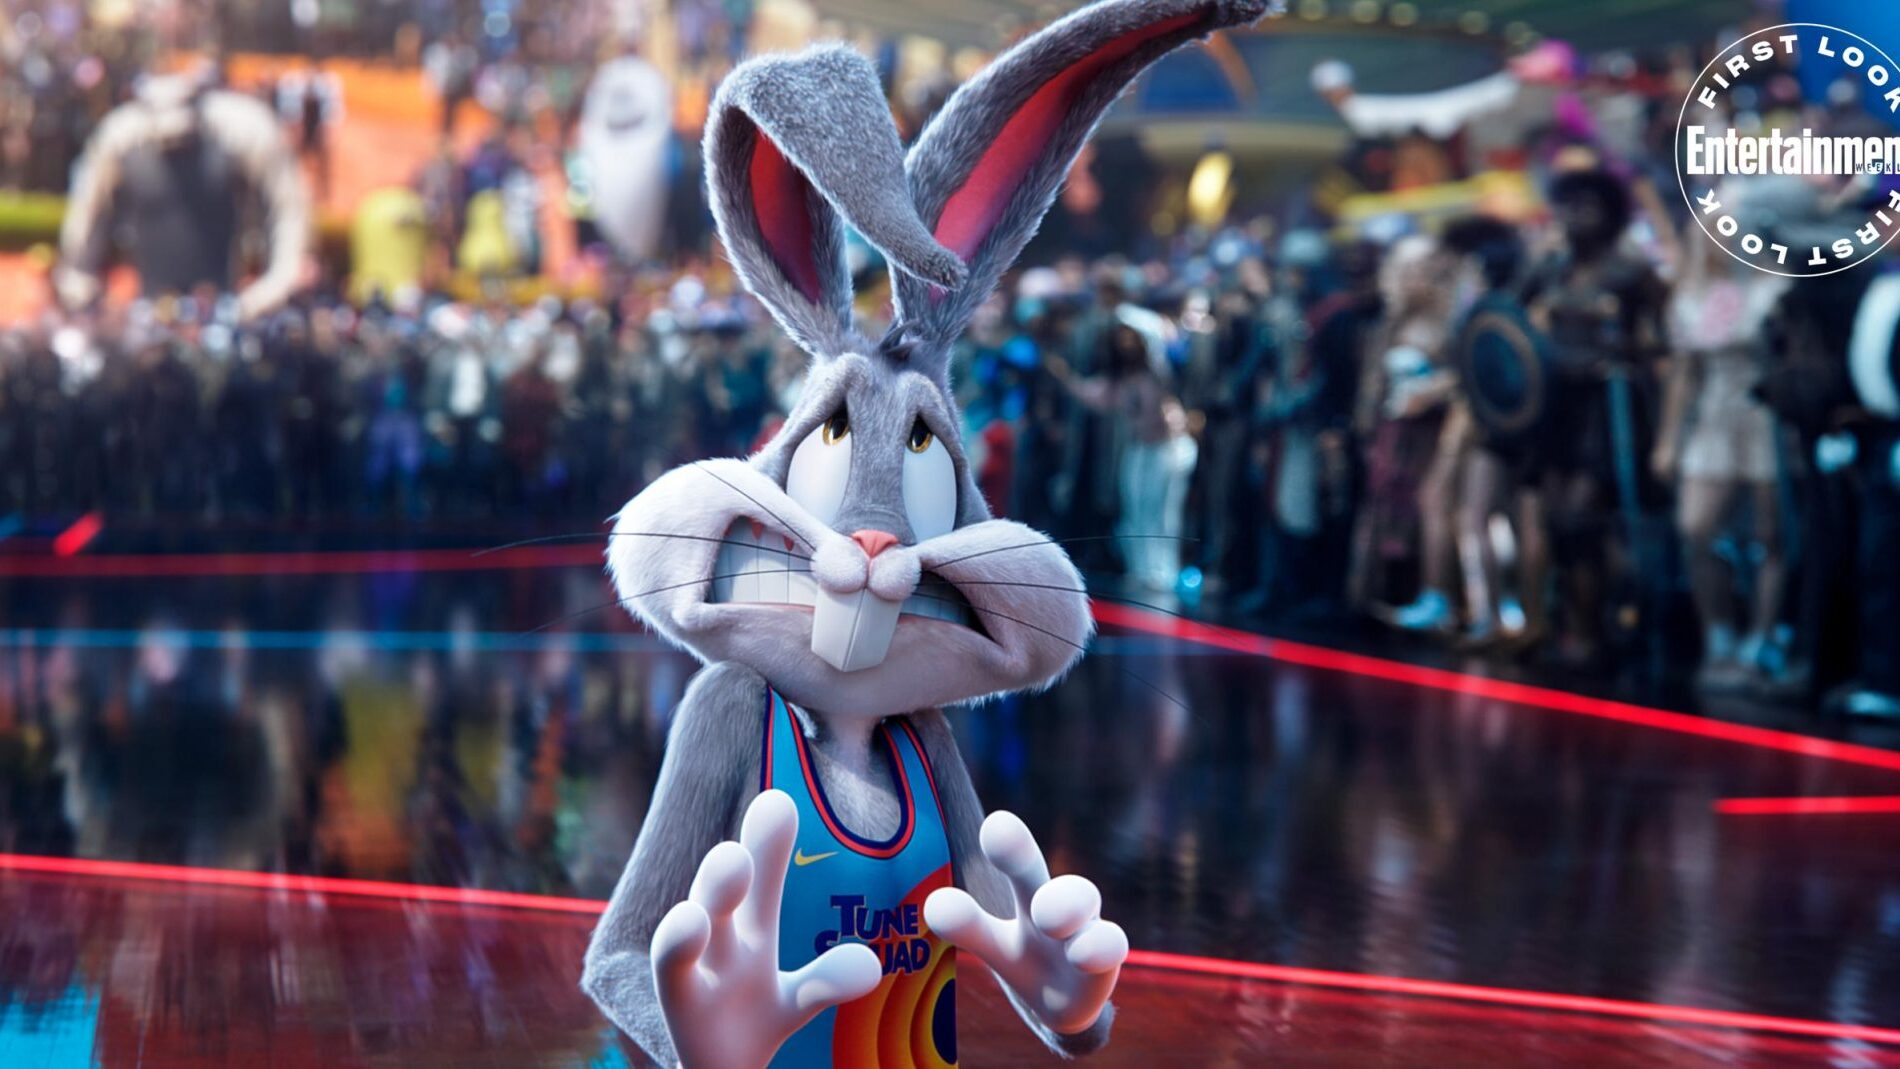 Space Jam A New Legacy - bugs bunny